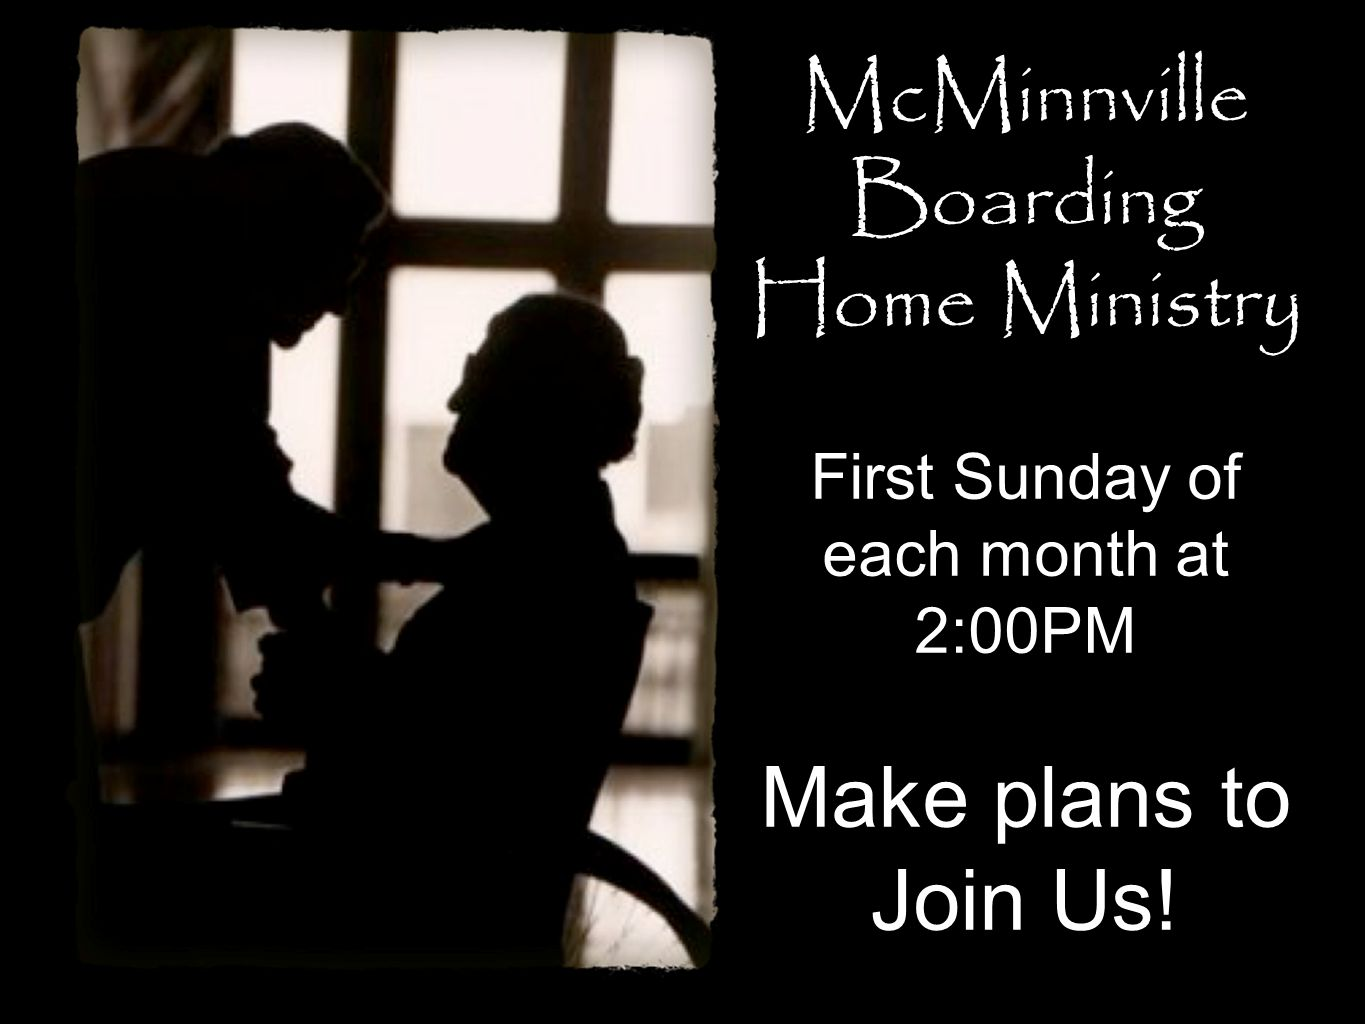 McMinnville Boarding Home Ministry